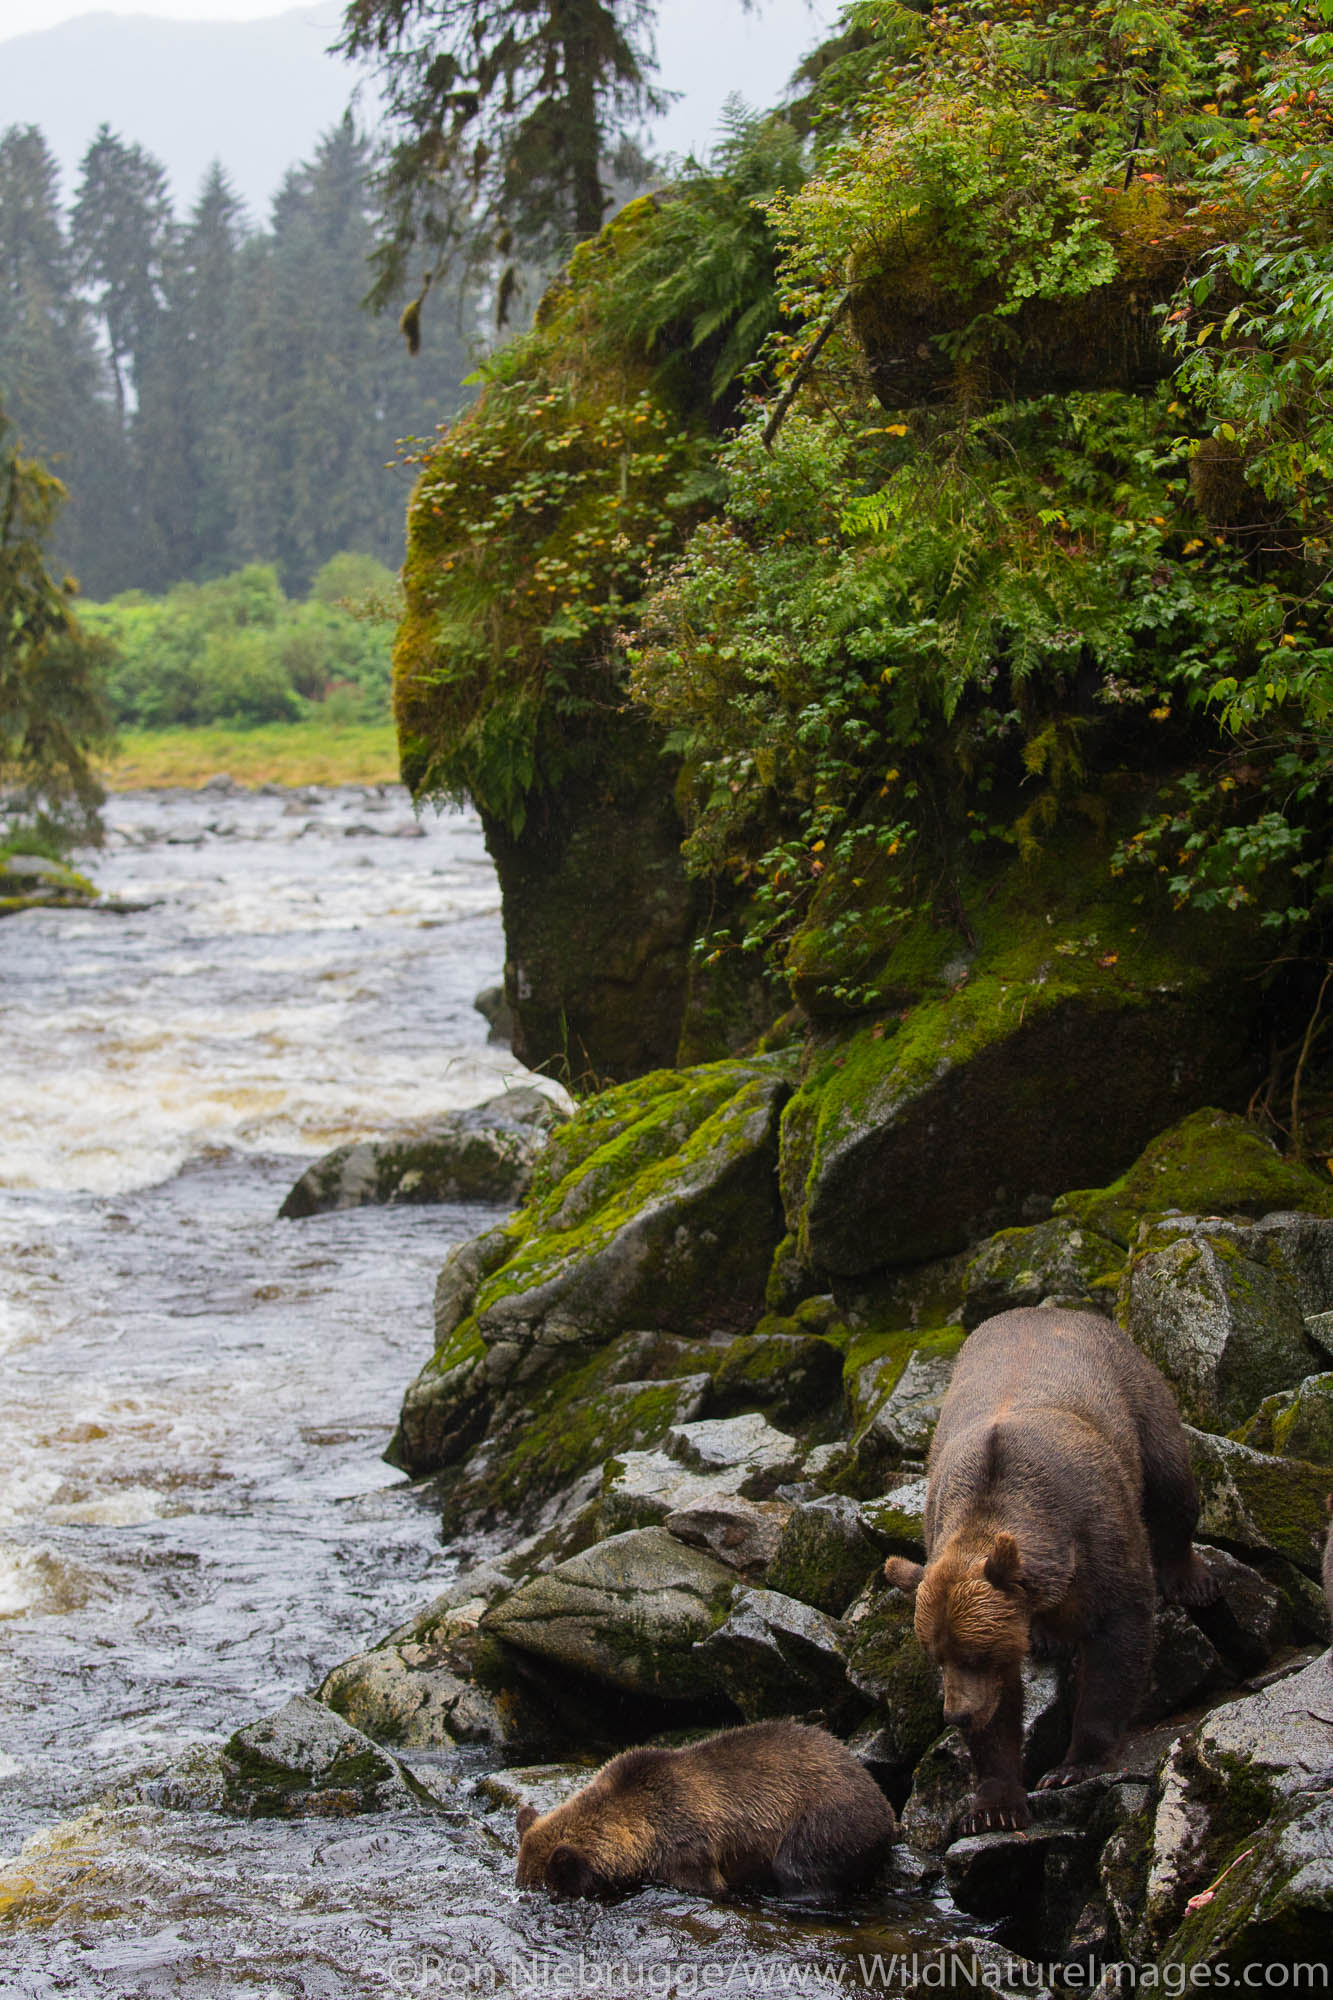 Anan Creek Wildlife Viewing Site, Tongass National Forest, Alaska.